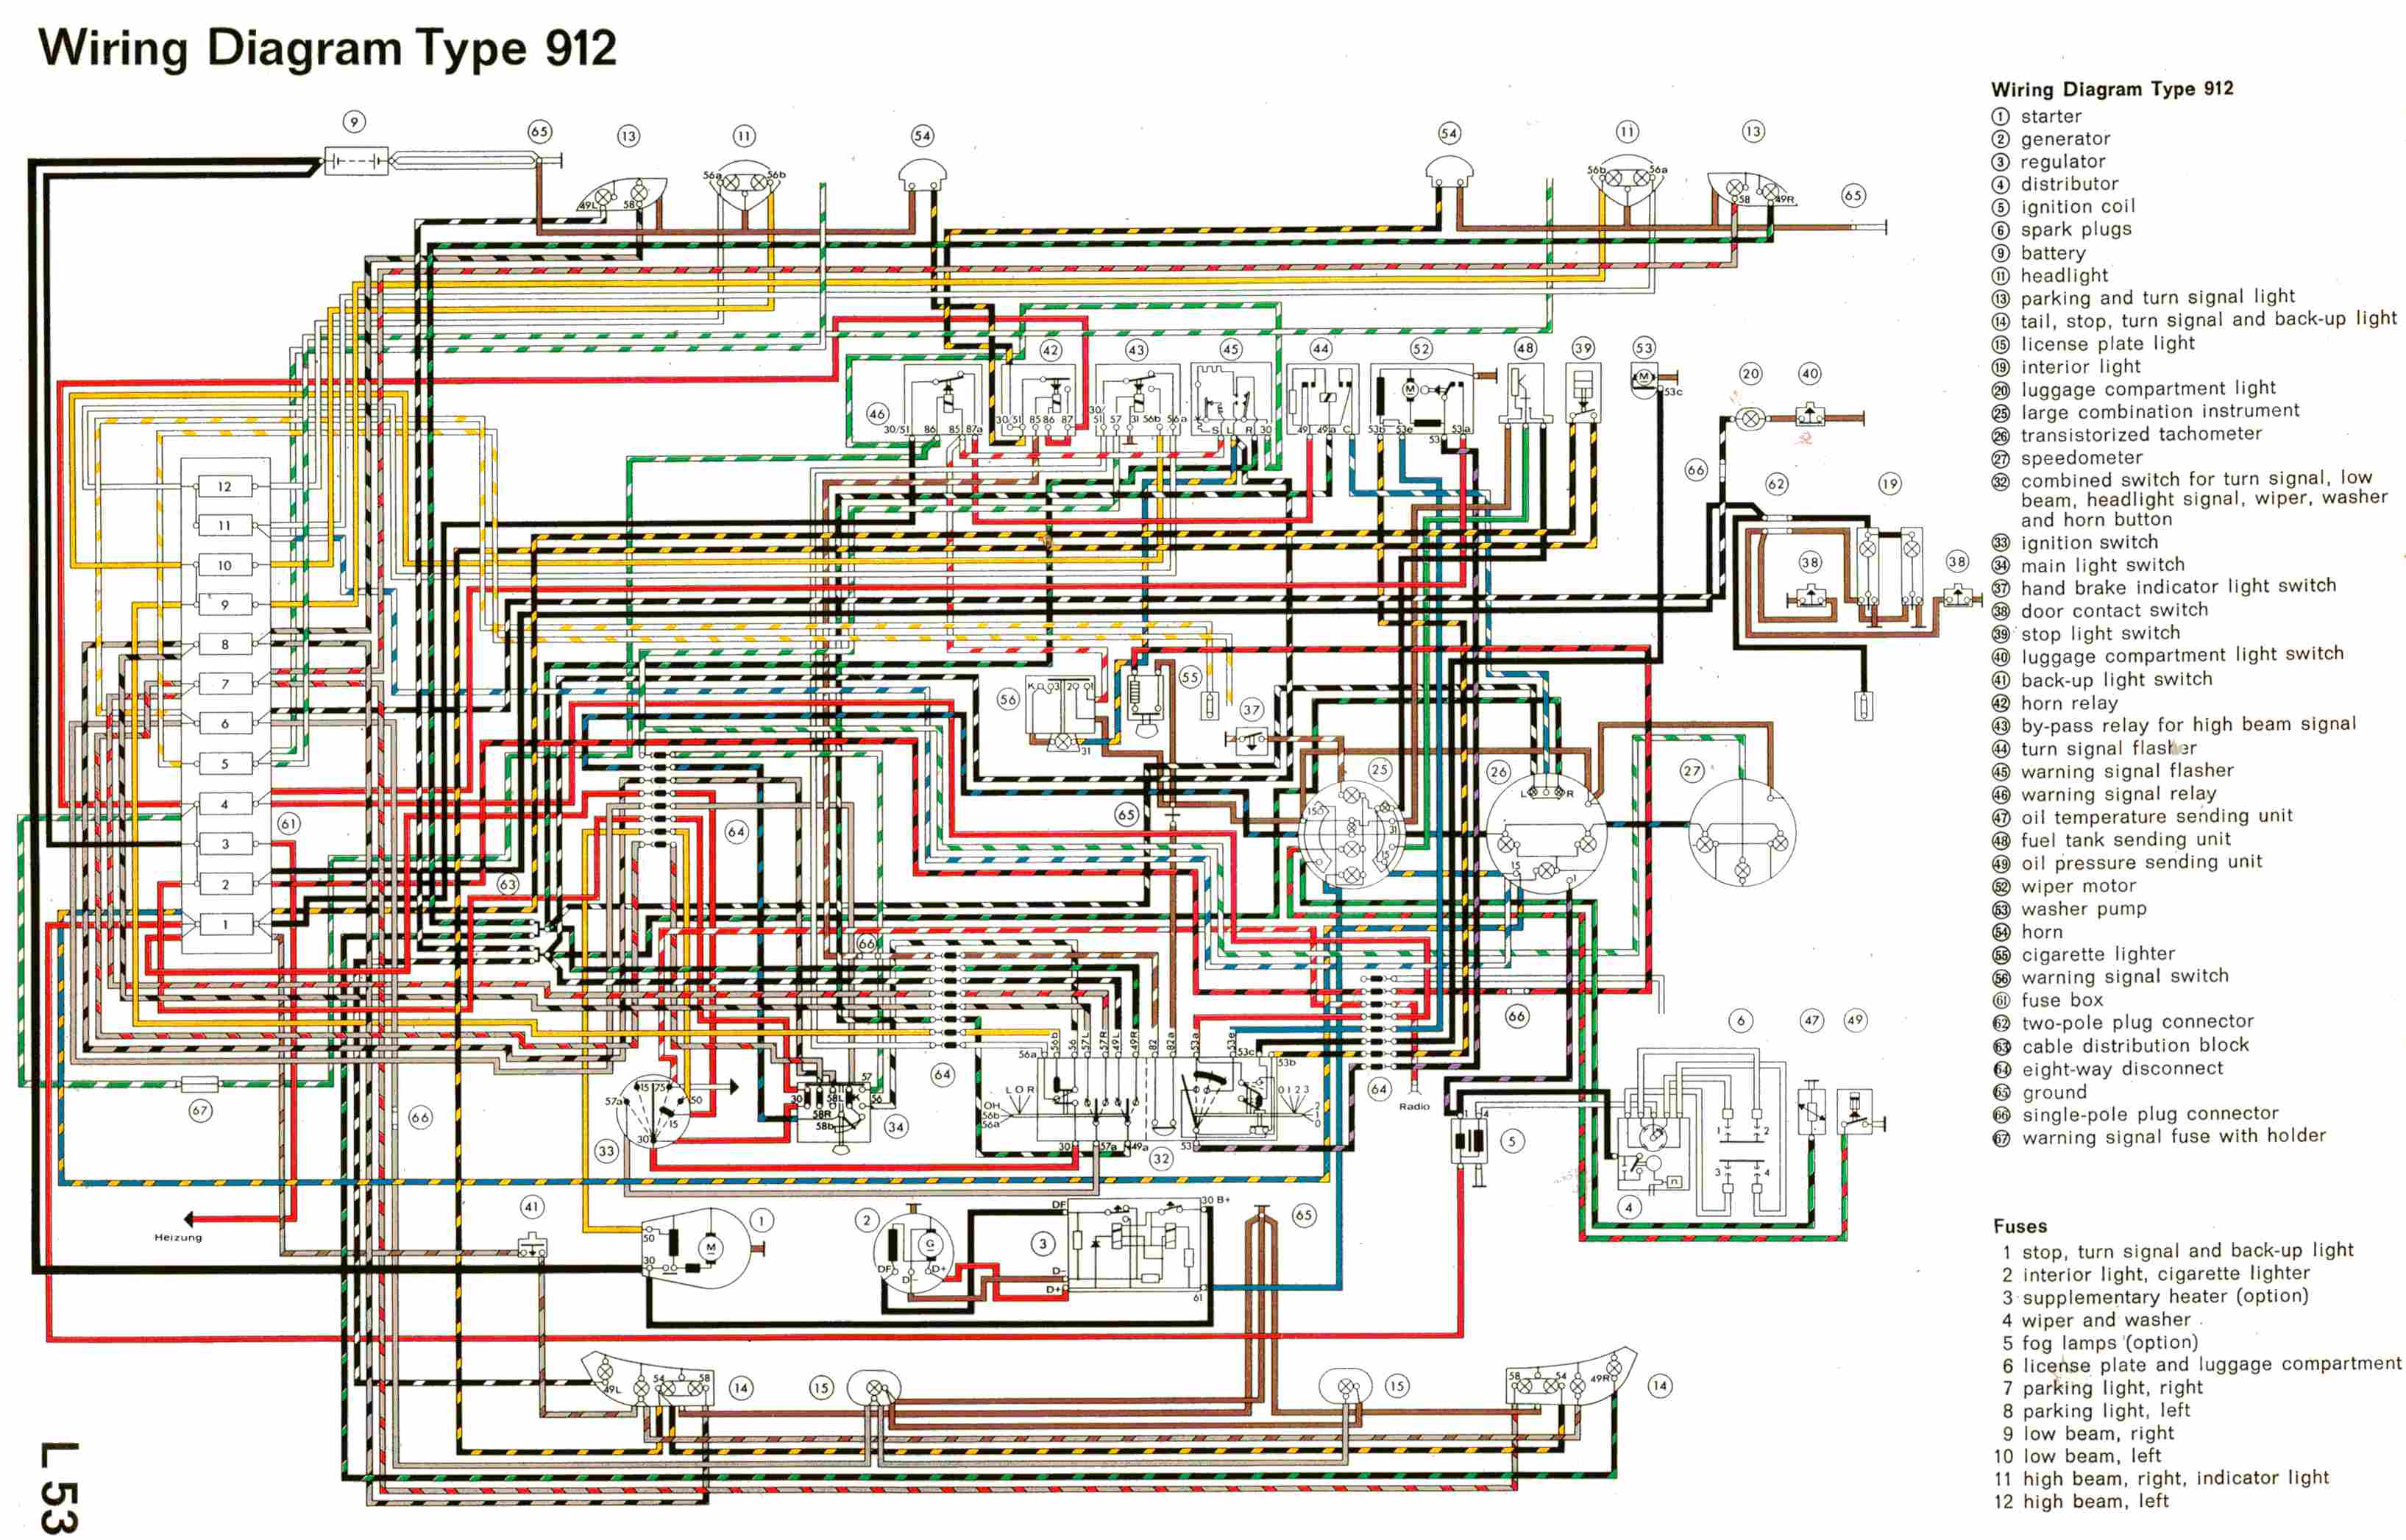 complete electrical wiring diagram of porsche type 912?resized665%2C4266ssld1 1981 porsche 928 wiring diagram efcaviation com 1980 porsche 928 wiring diagram at bakdesigns.co